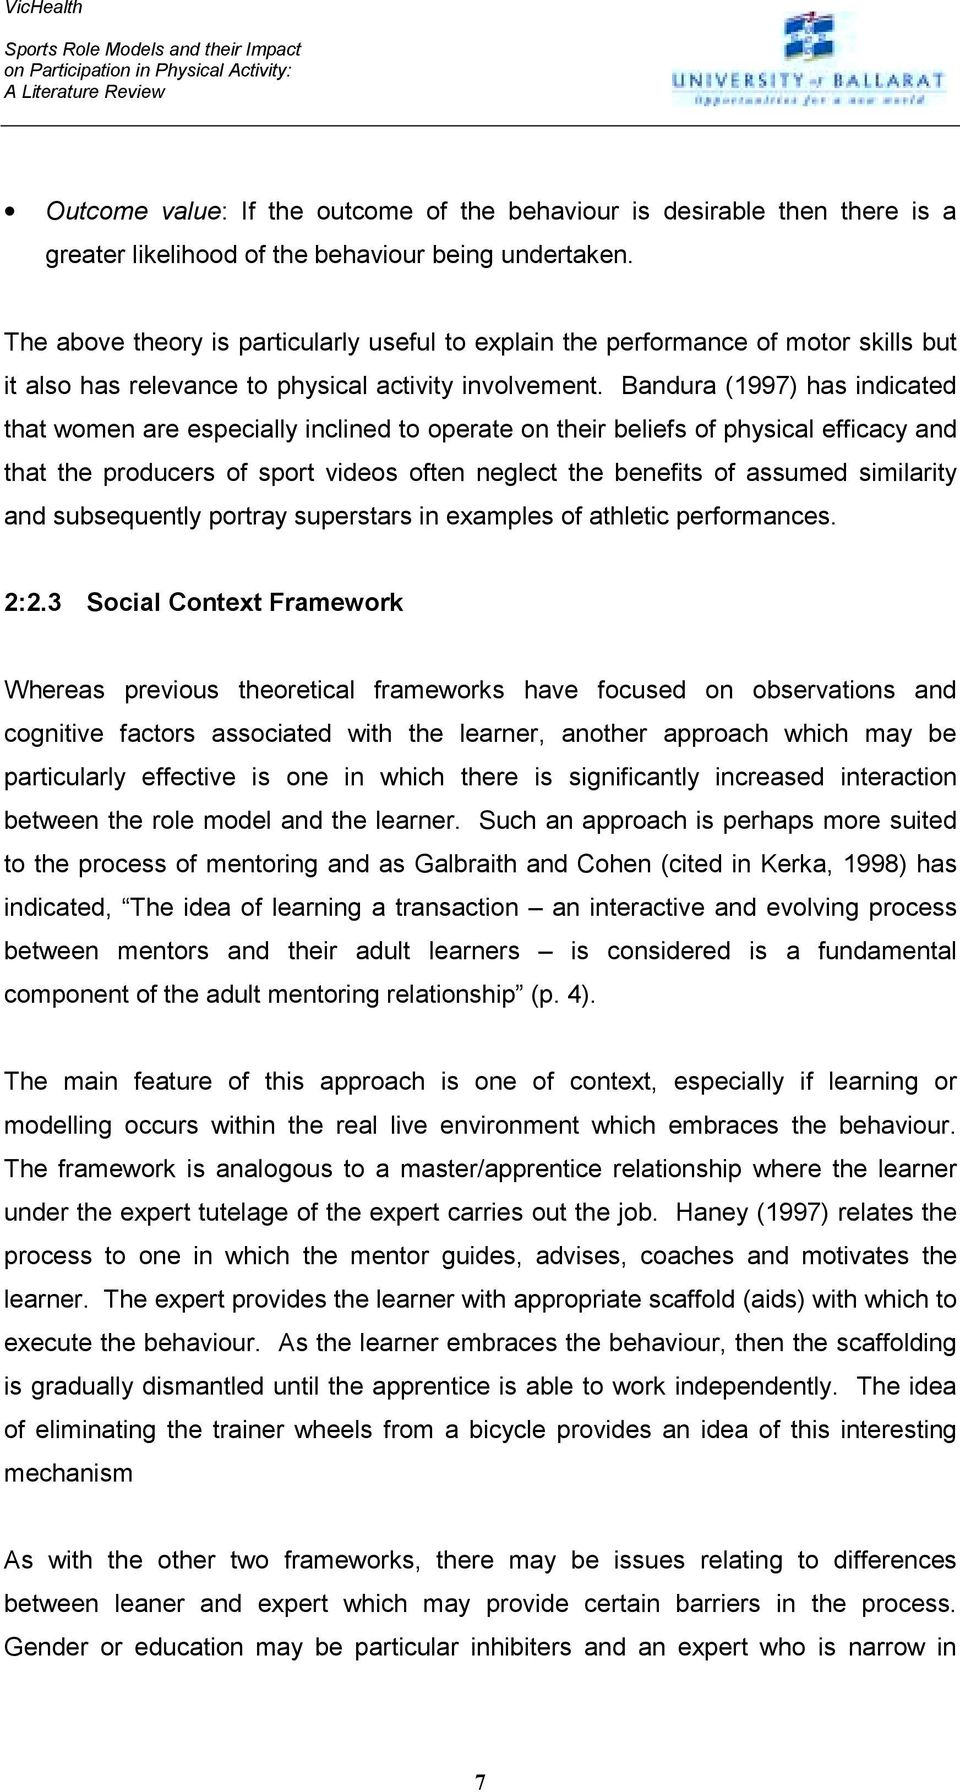 Bandura (1997) has indicated that women are especially inclined to operate on their beliefs of physical efficacy and that the producers of sport videos often neglect the benefits of assumed